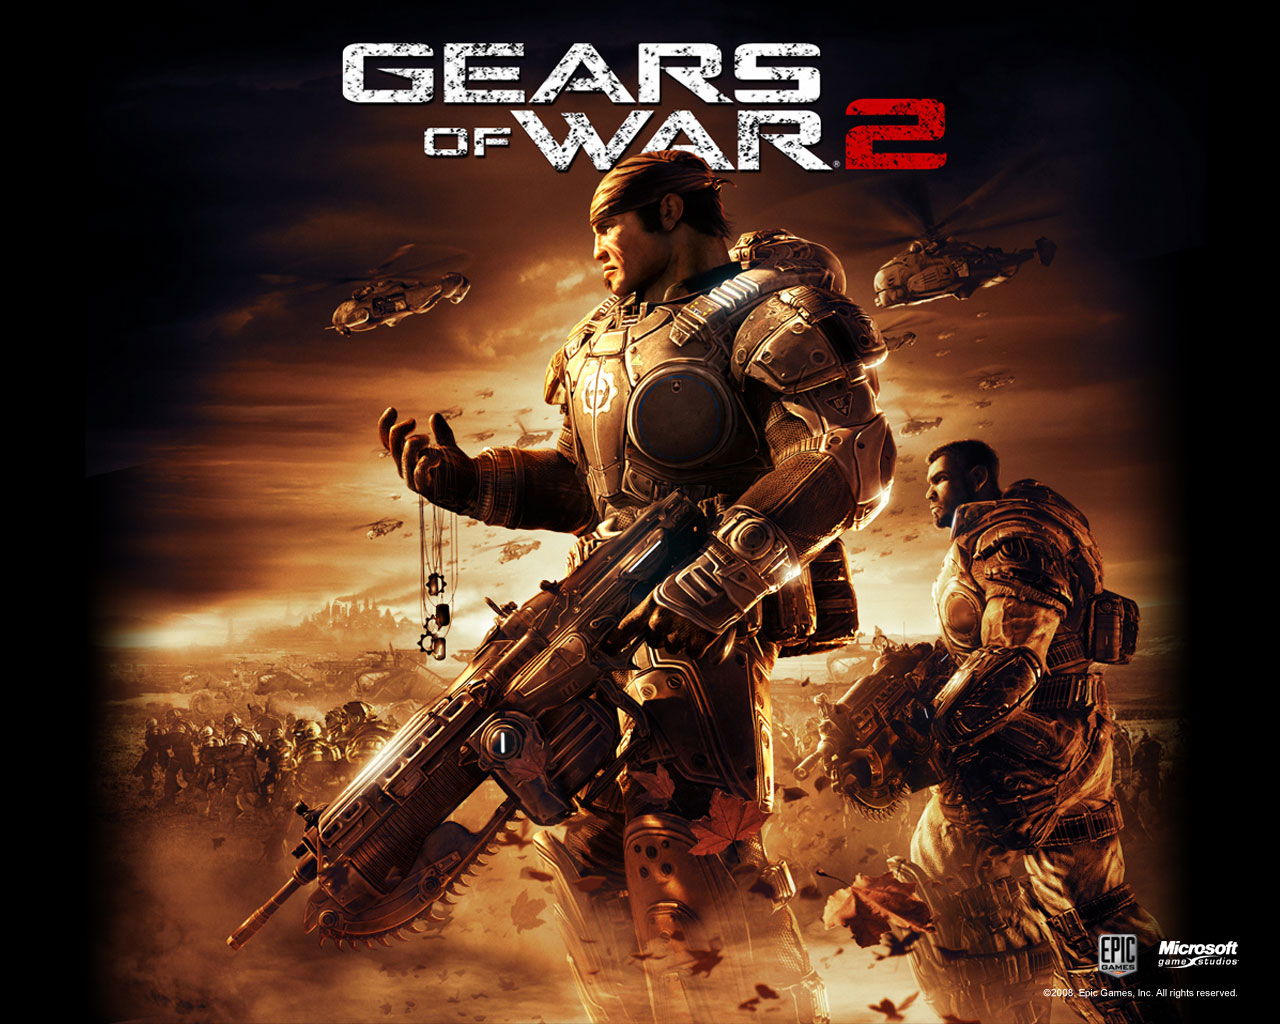 gears of war 2 004 | free desktop wallpapers for widescreen, hd and